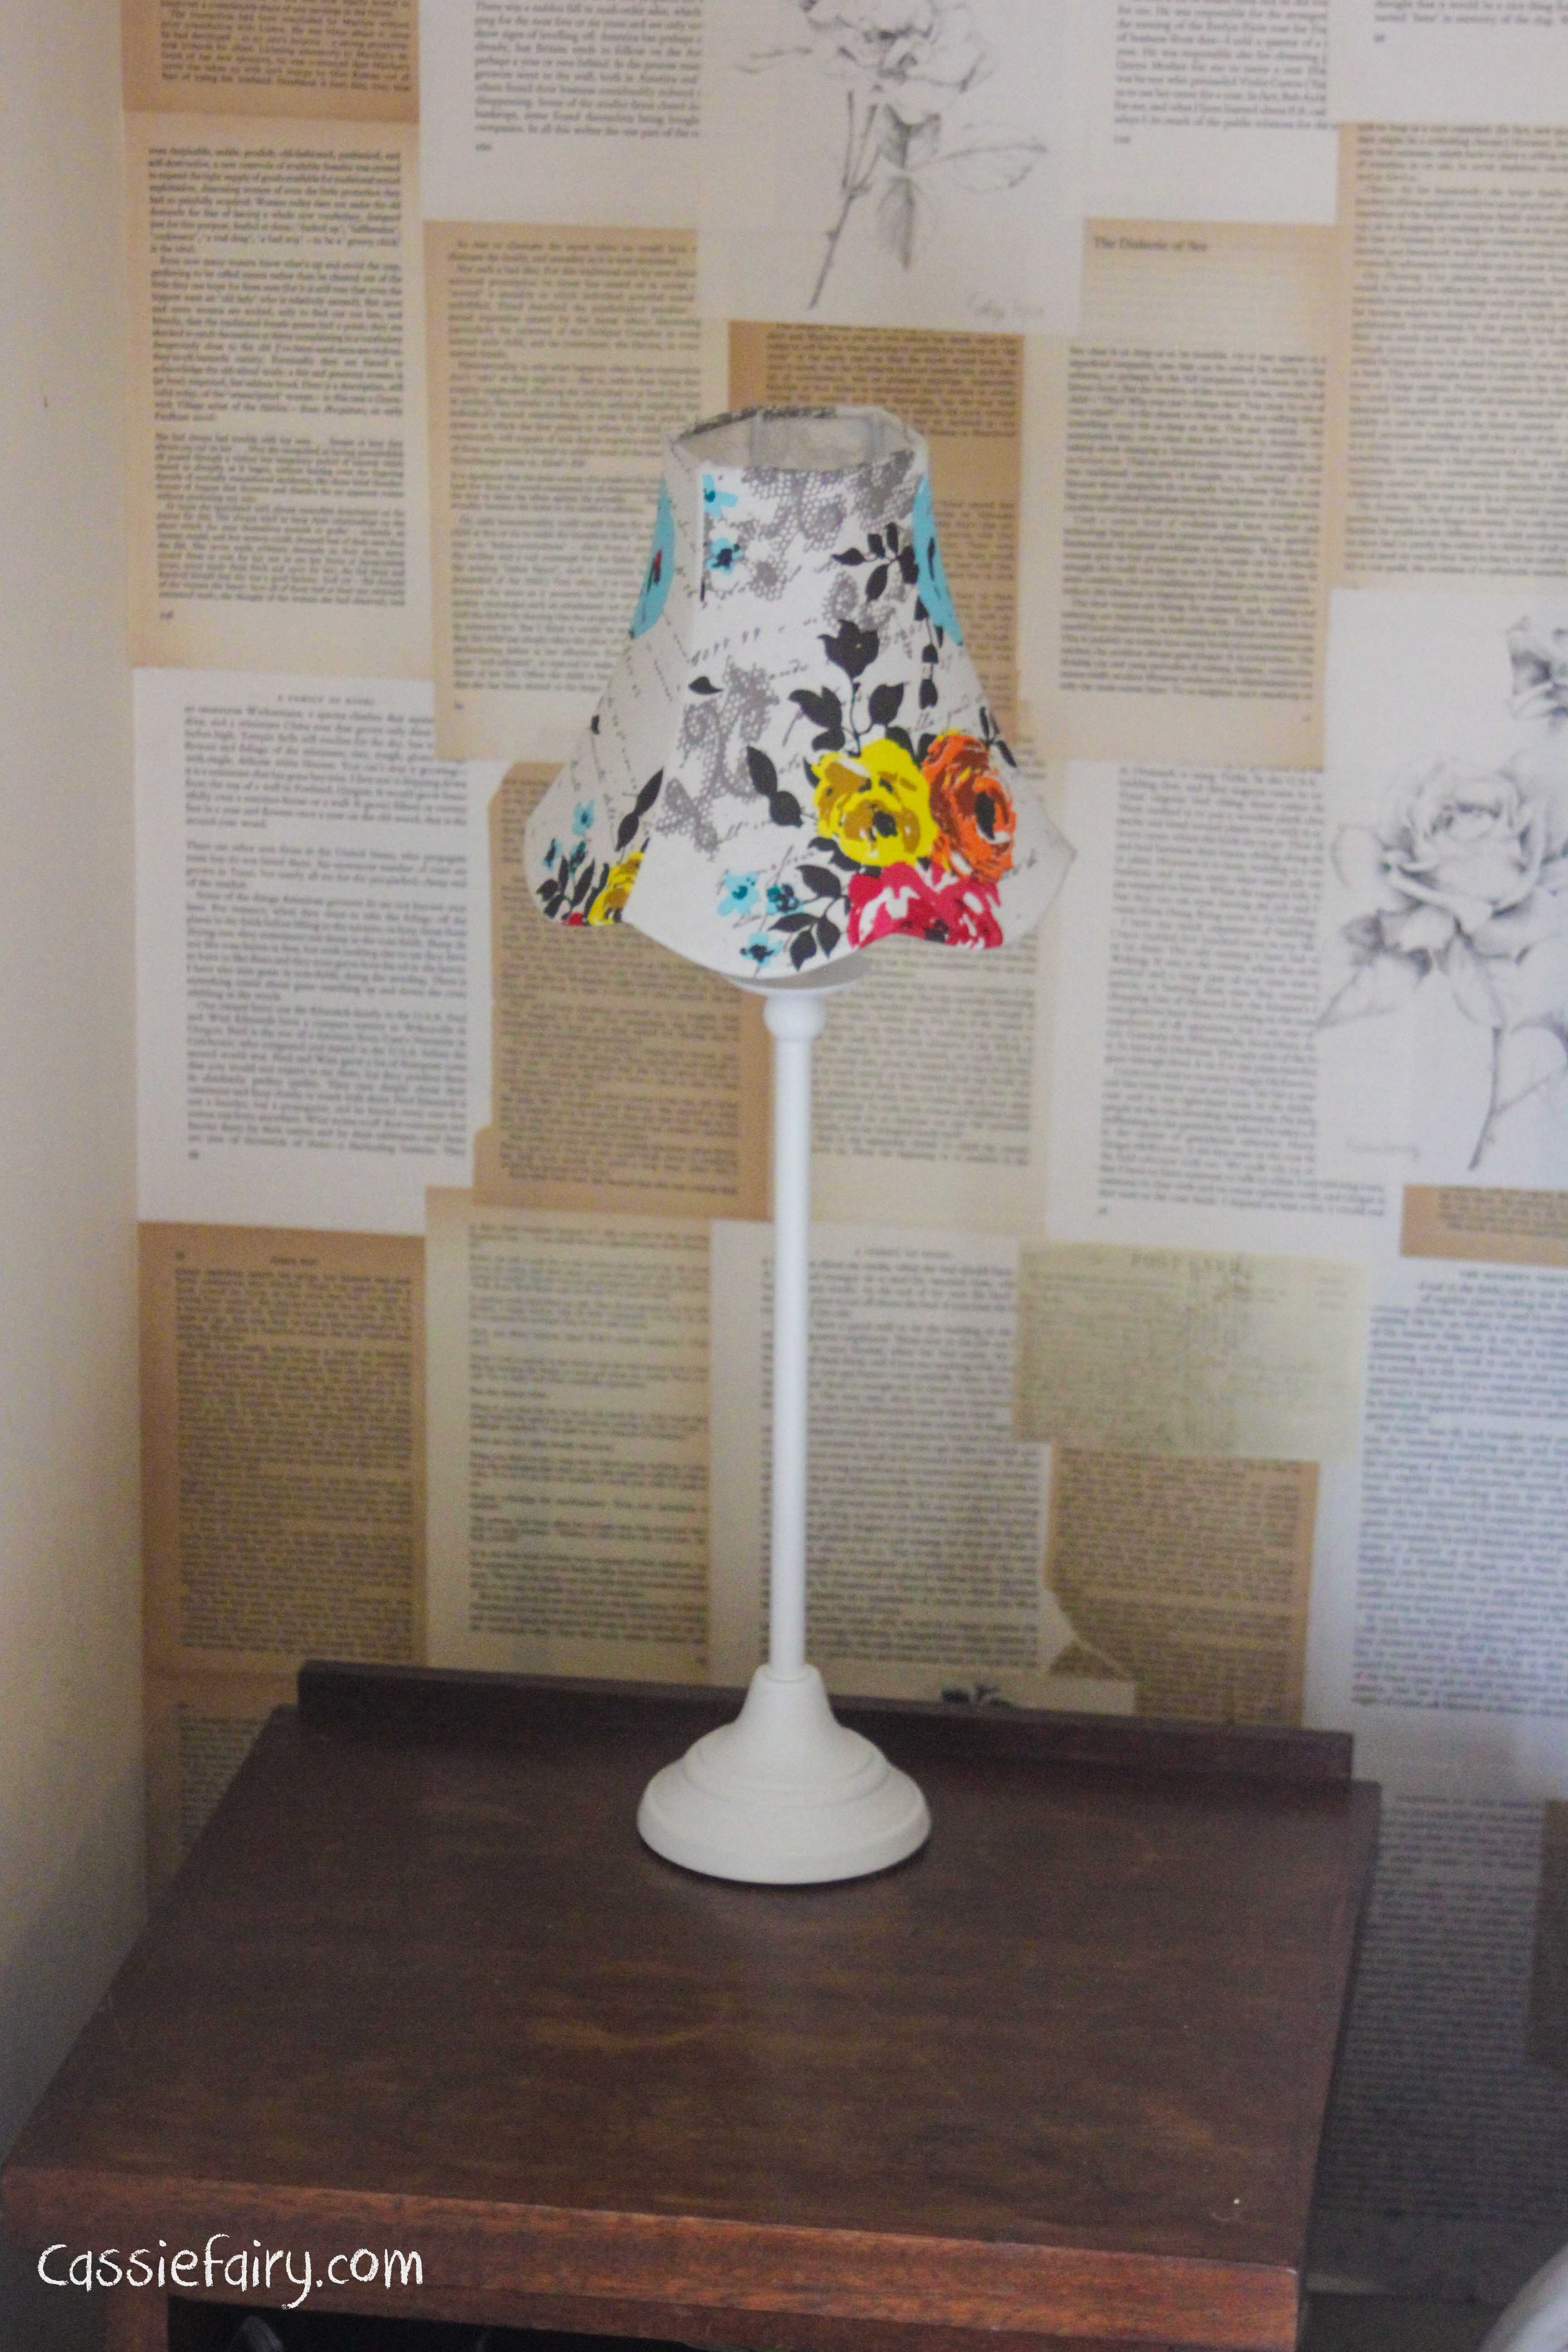 Dream a little dream bedroom makeover project - bedside lights from BHS-3